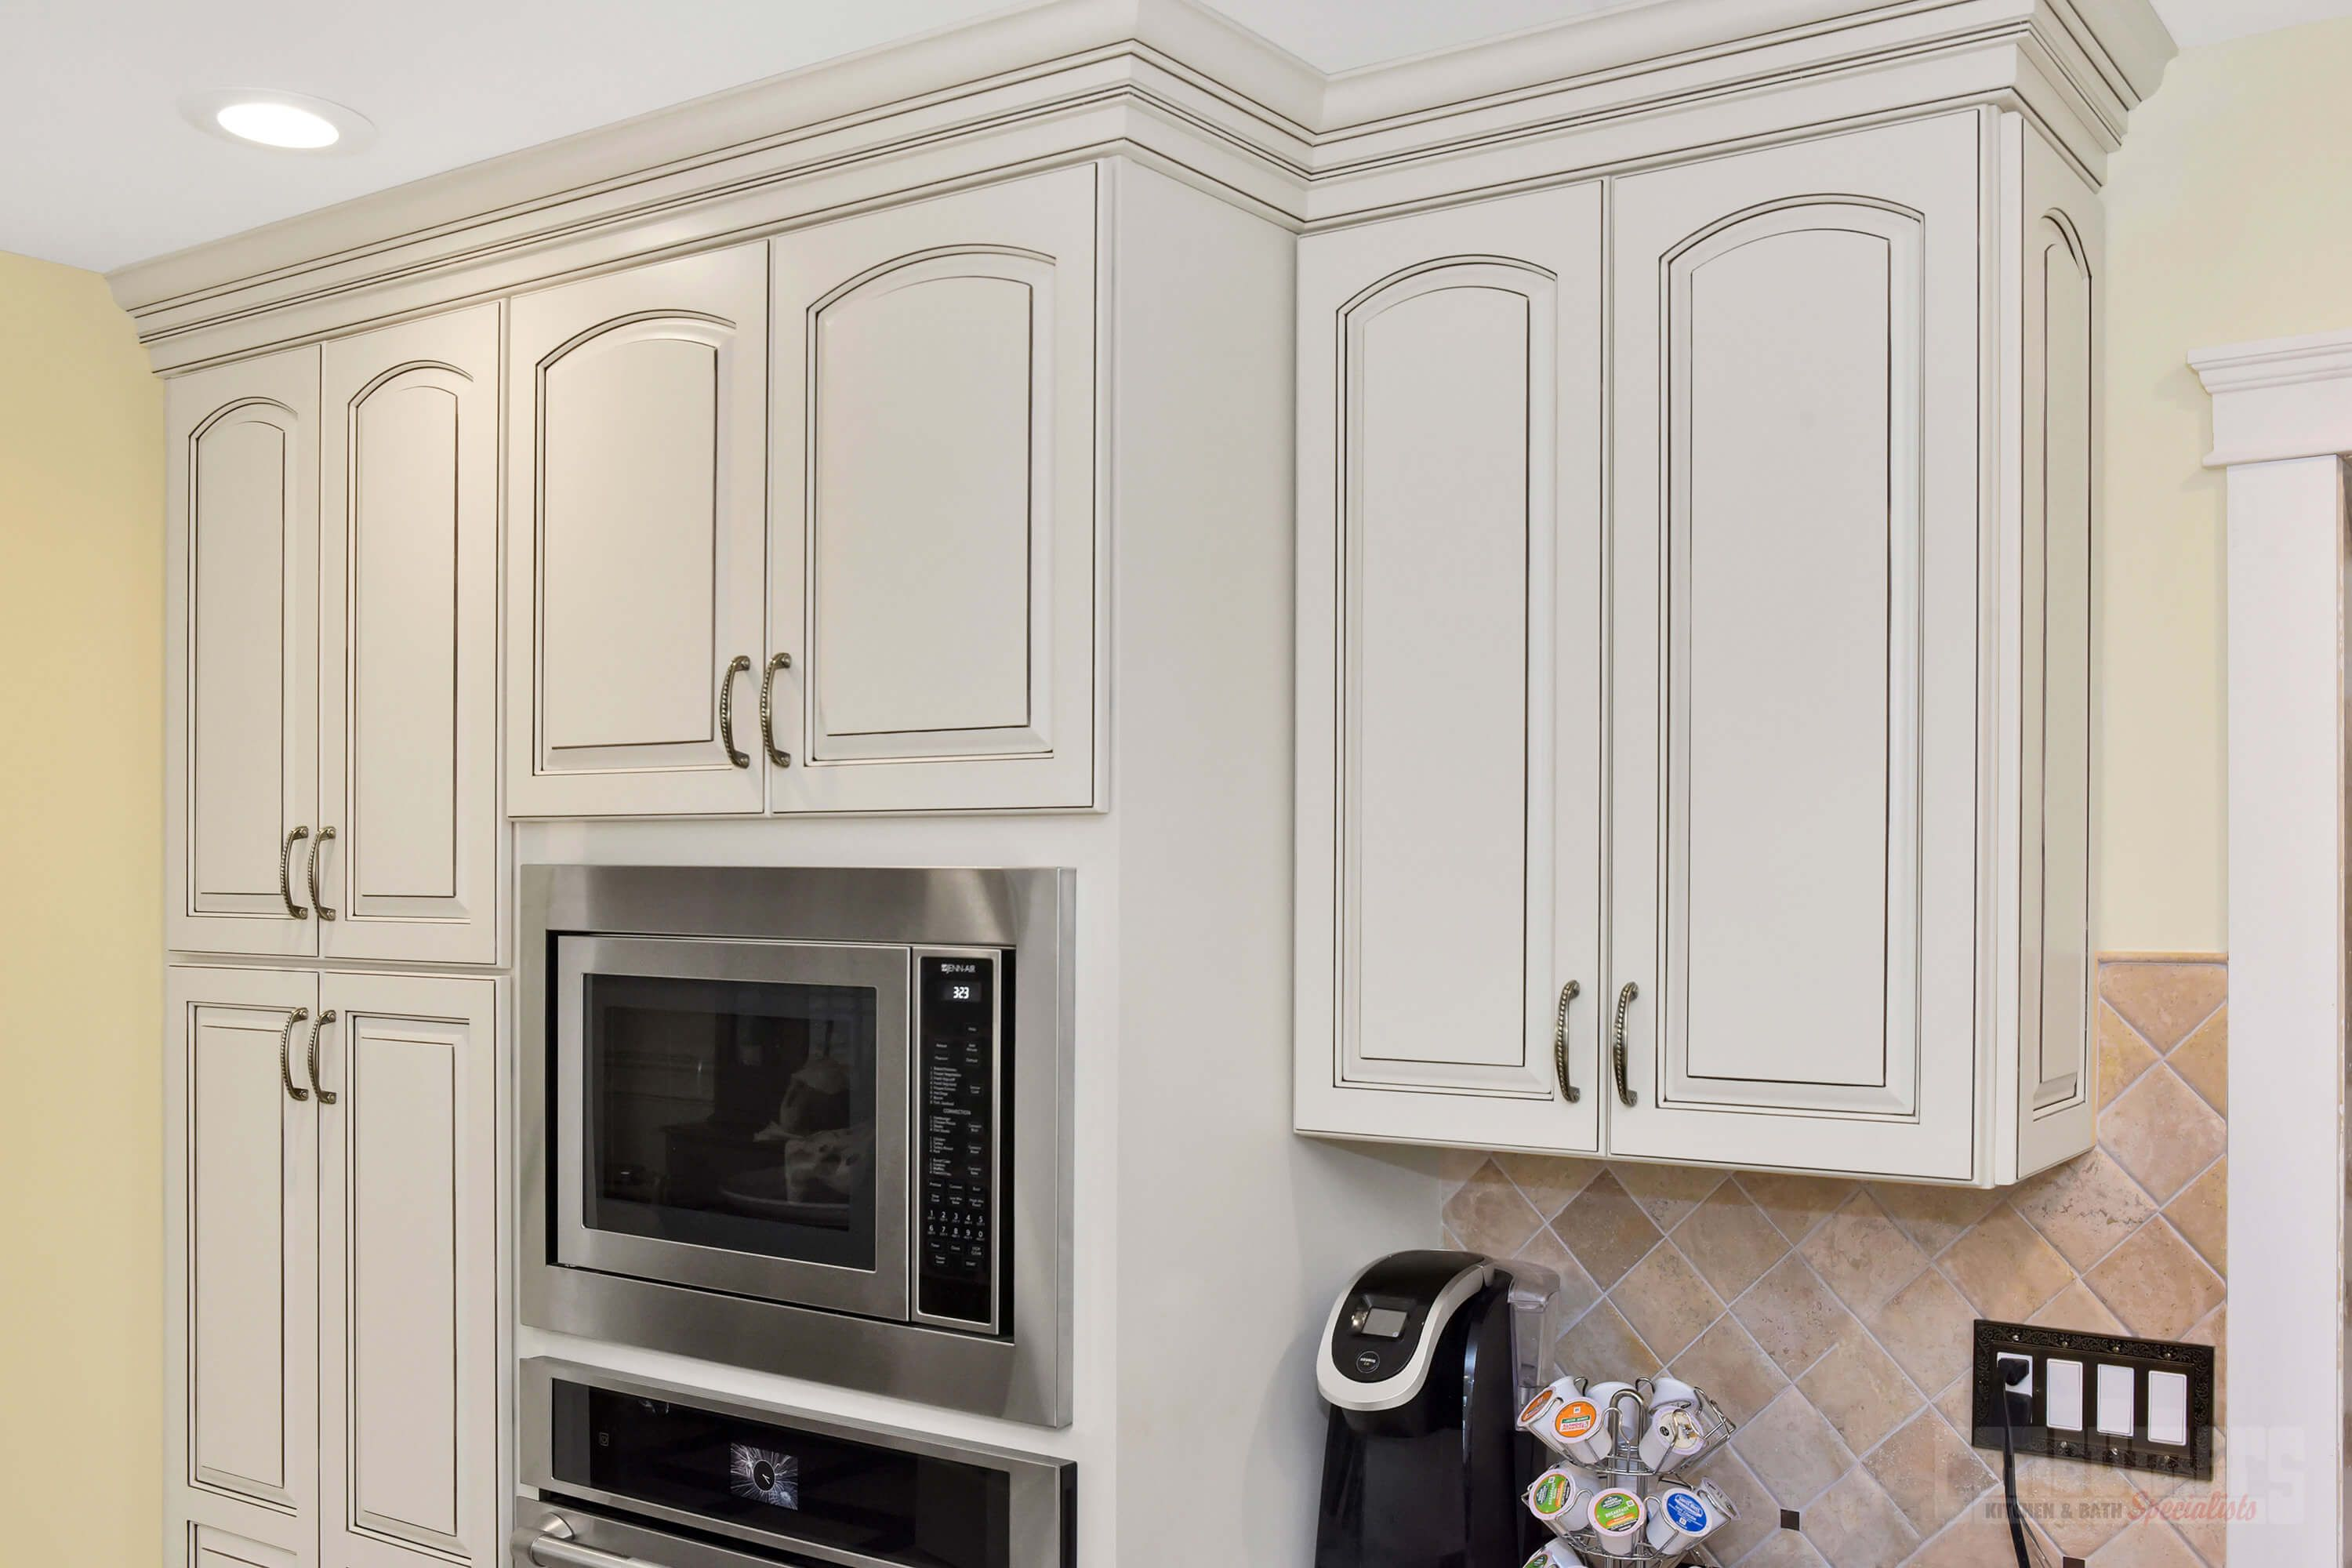 Pin by Consumers Kitchens & Baths on East Northport ...